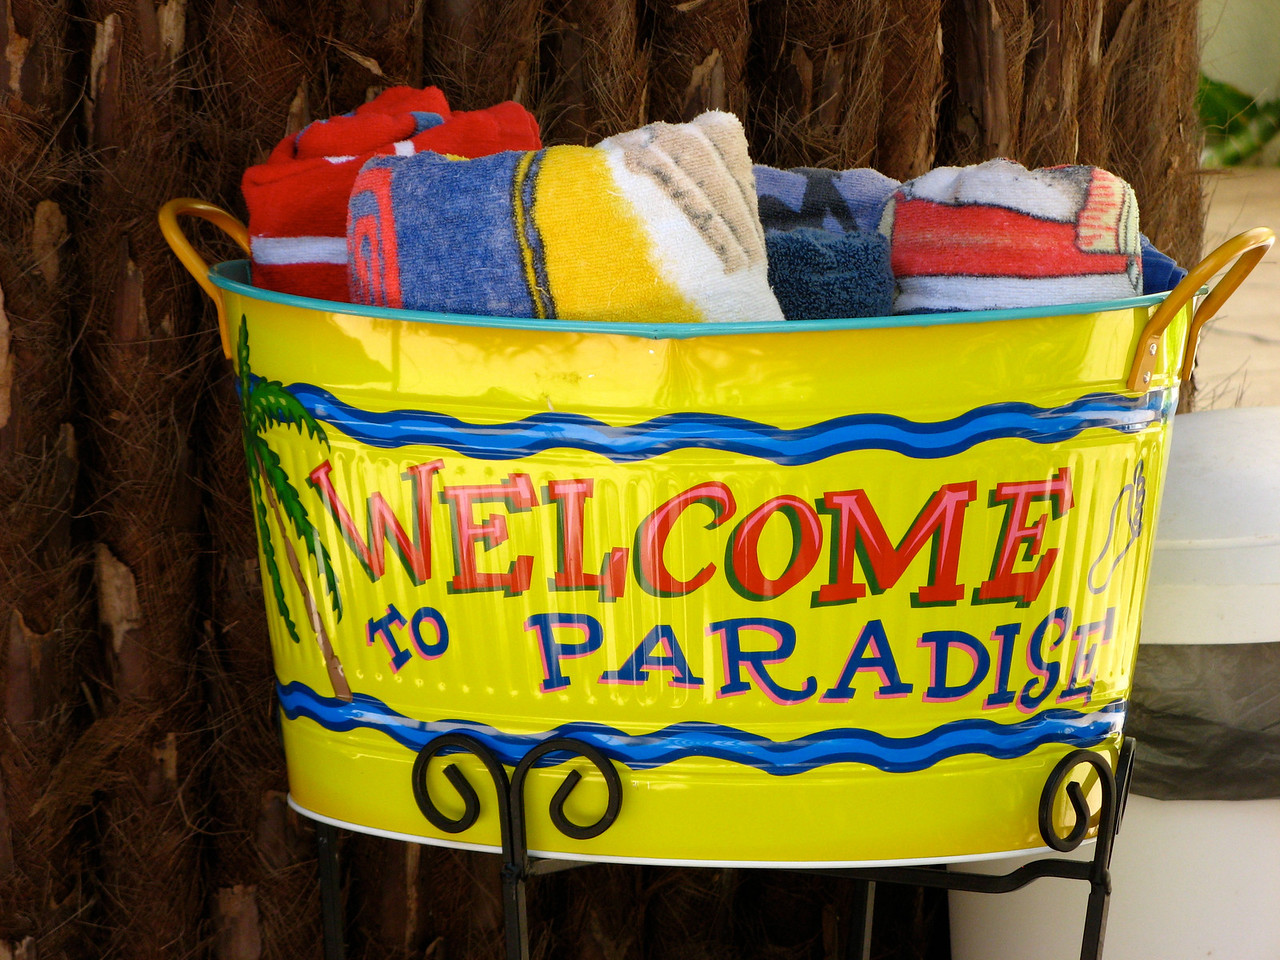 Beach towels are provided.